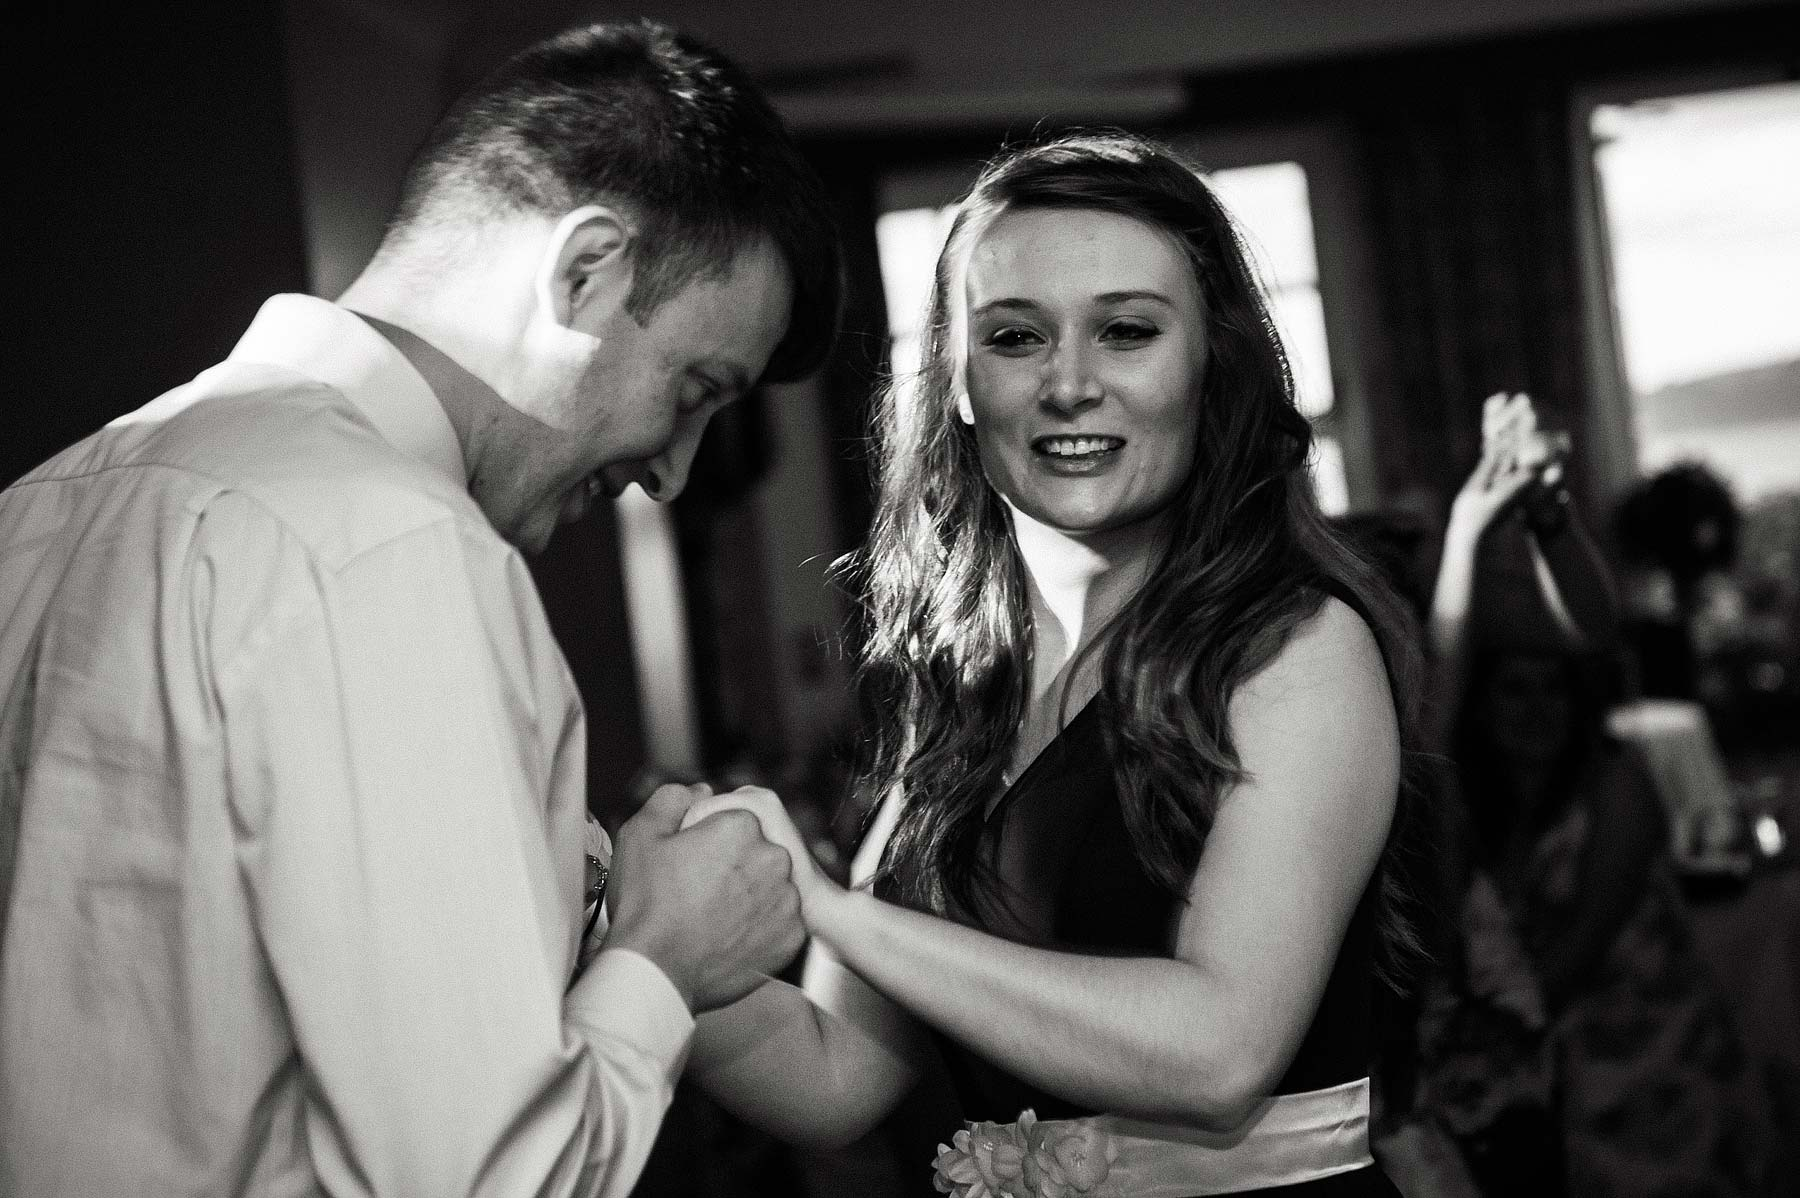 berry-head-hotel-brixham-wedding-photographer-107